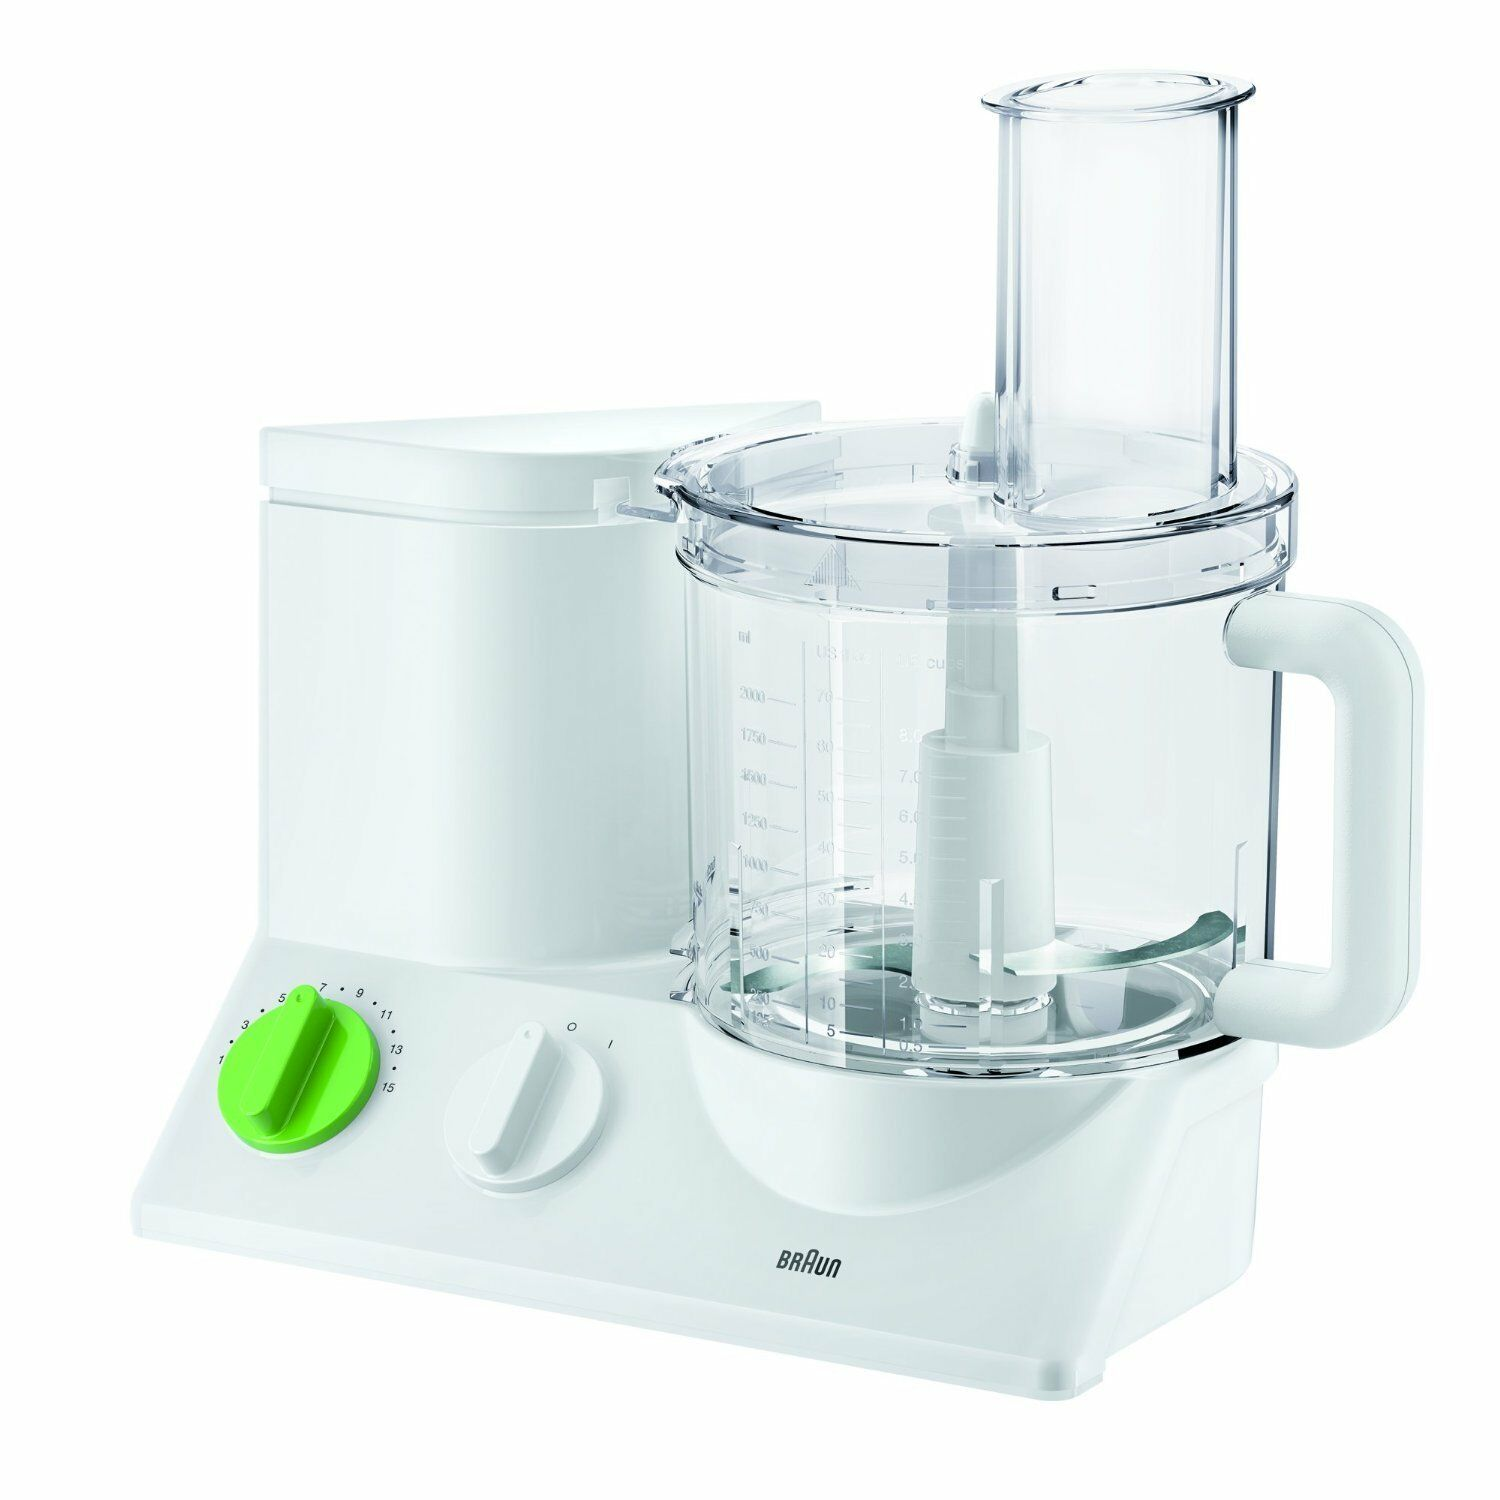 Braun FP3020 FP3020 FP3020 220 Volt Food Processor With 5 Attachments (NON-USA) for Europe 76adb1